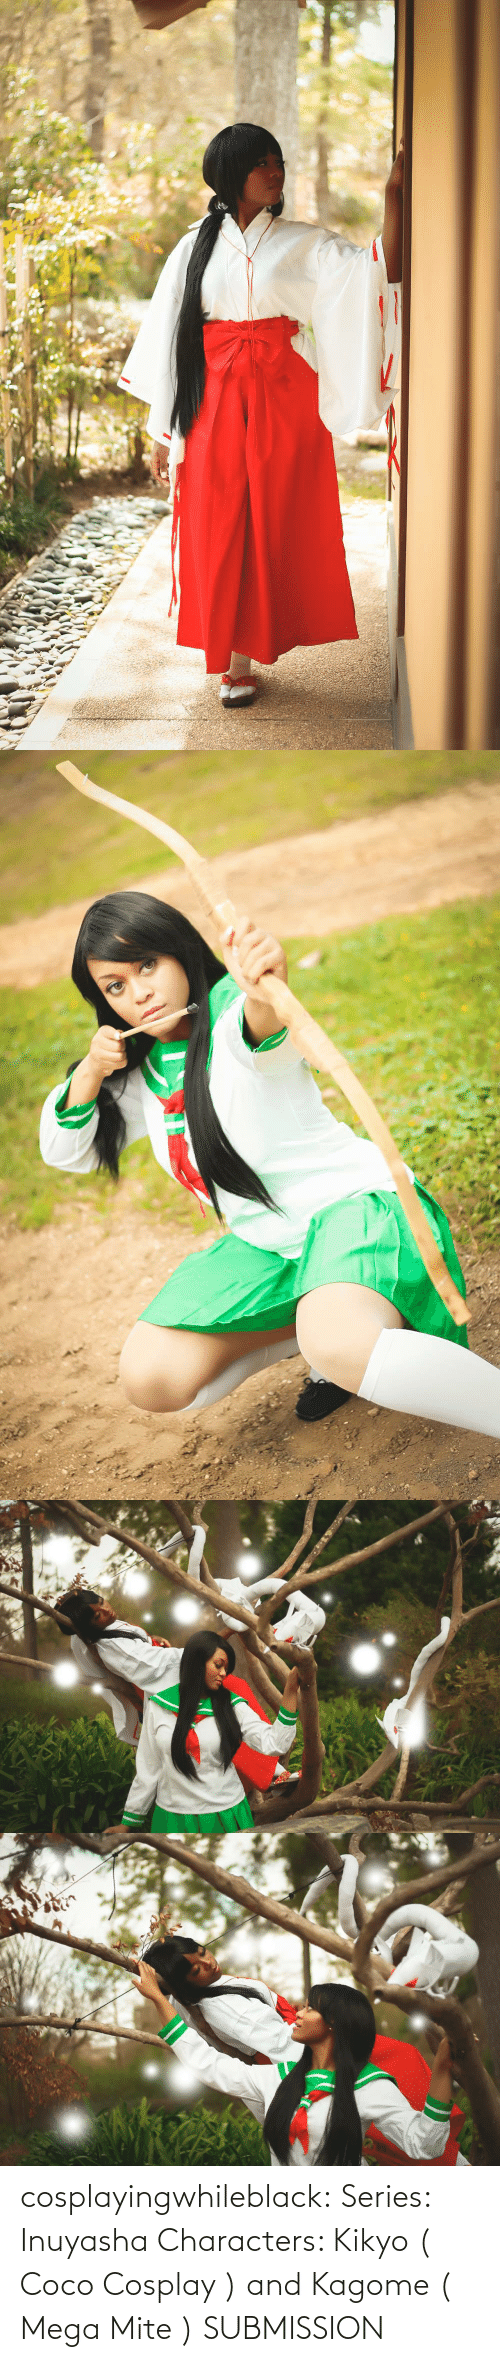 Facebook: cosplayingwhileblack:    Series: Inuyasha Characters: Kikyo ( Coco Cosplay ) and Kagome ( Mega Mite )   SUBMISSION